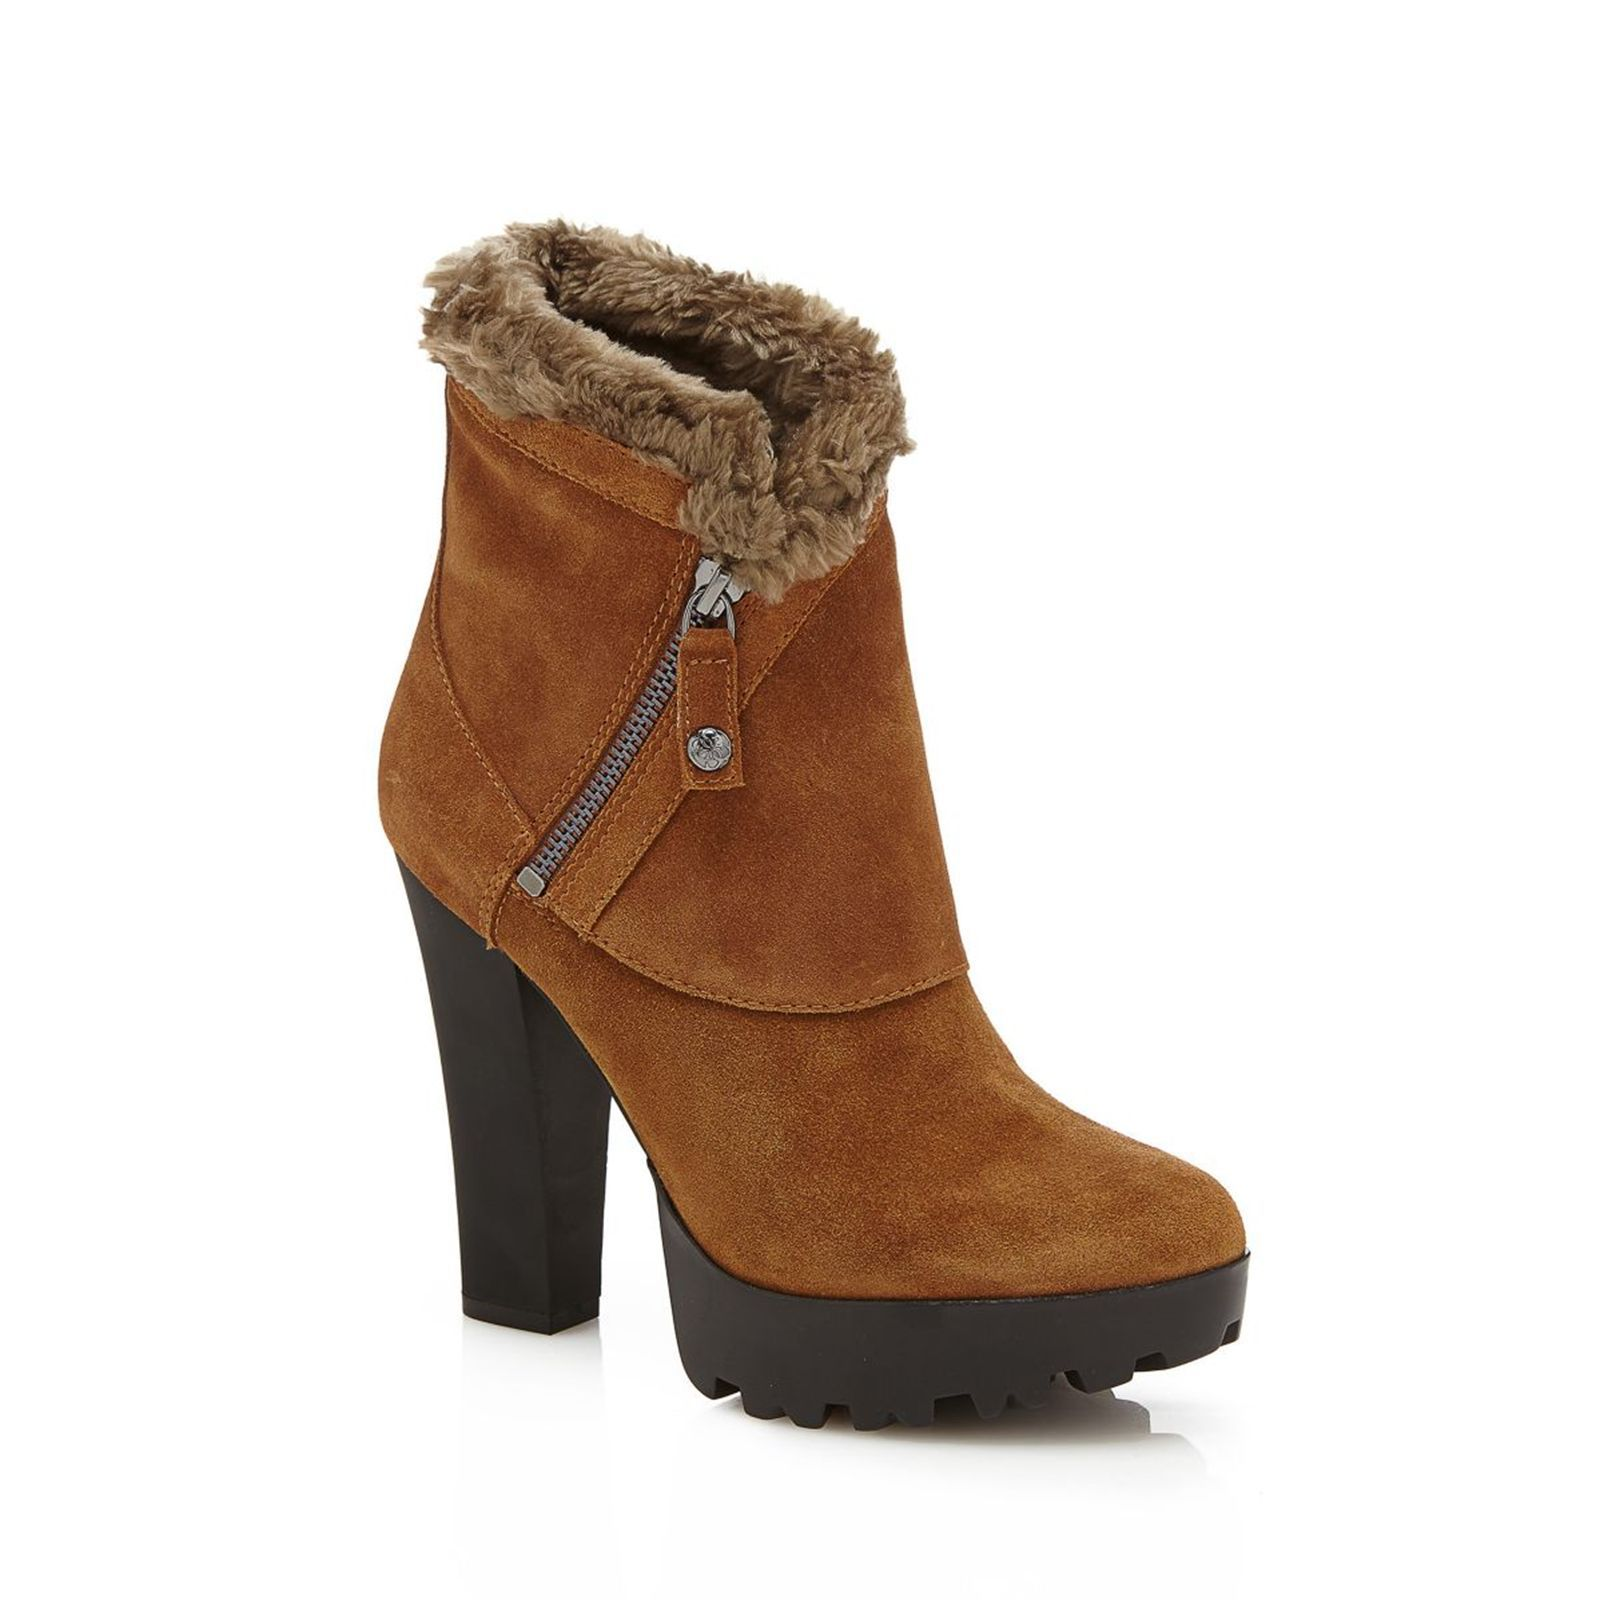 Guess Clanci - Bottines en cuir - marron